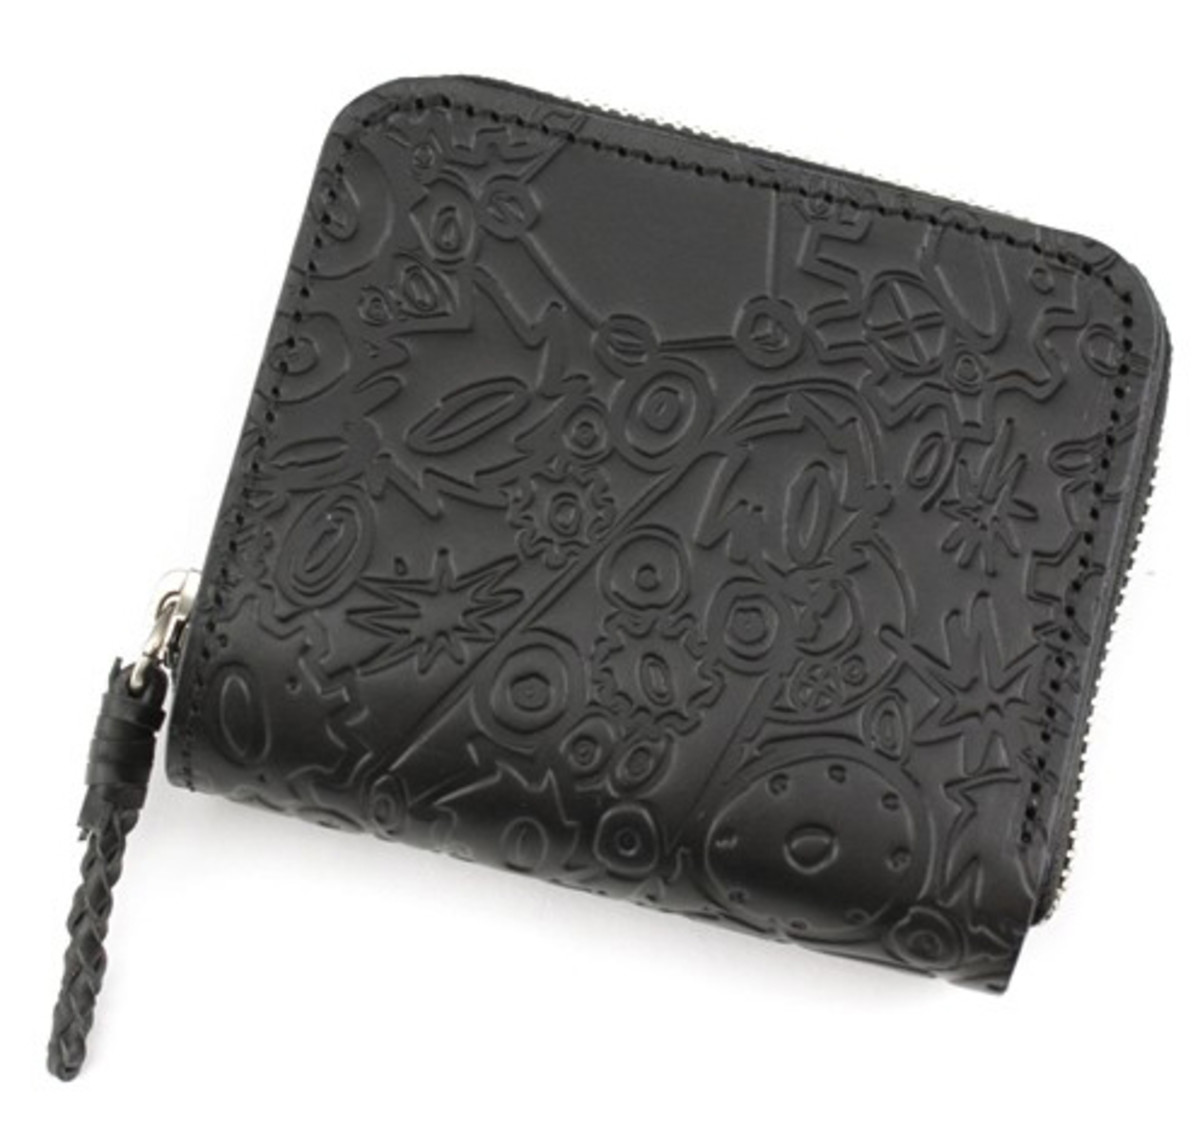 futura-laboratories-marker-graphic-embossed-wallet-01